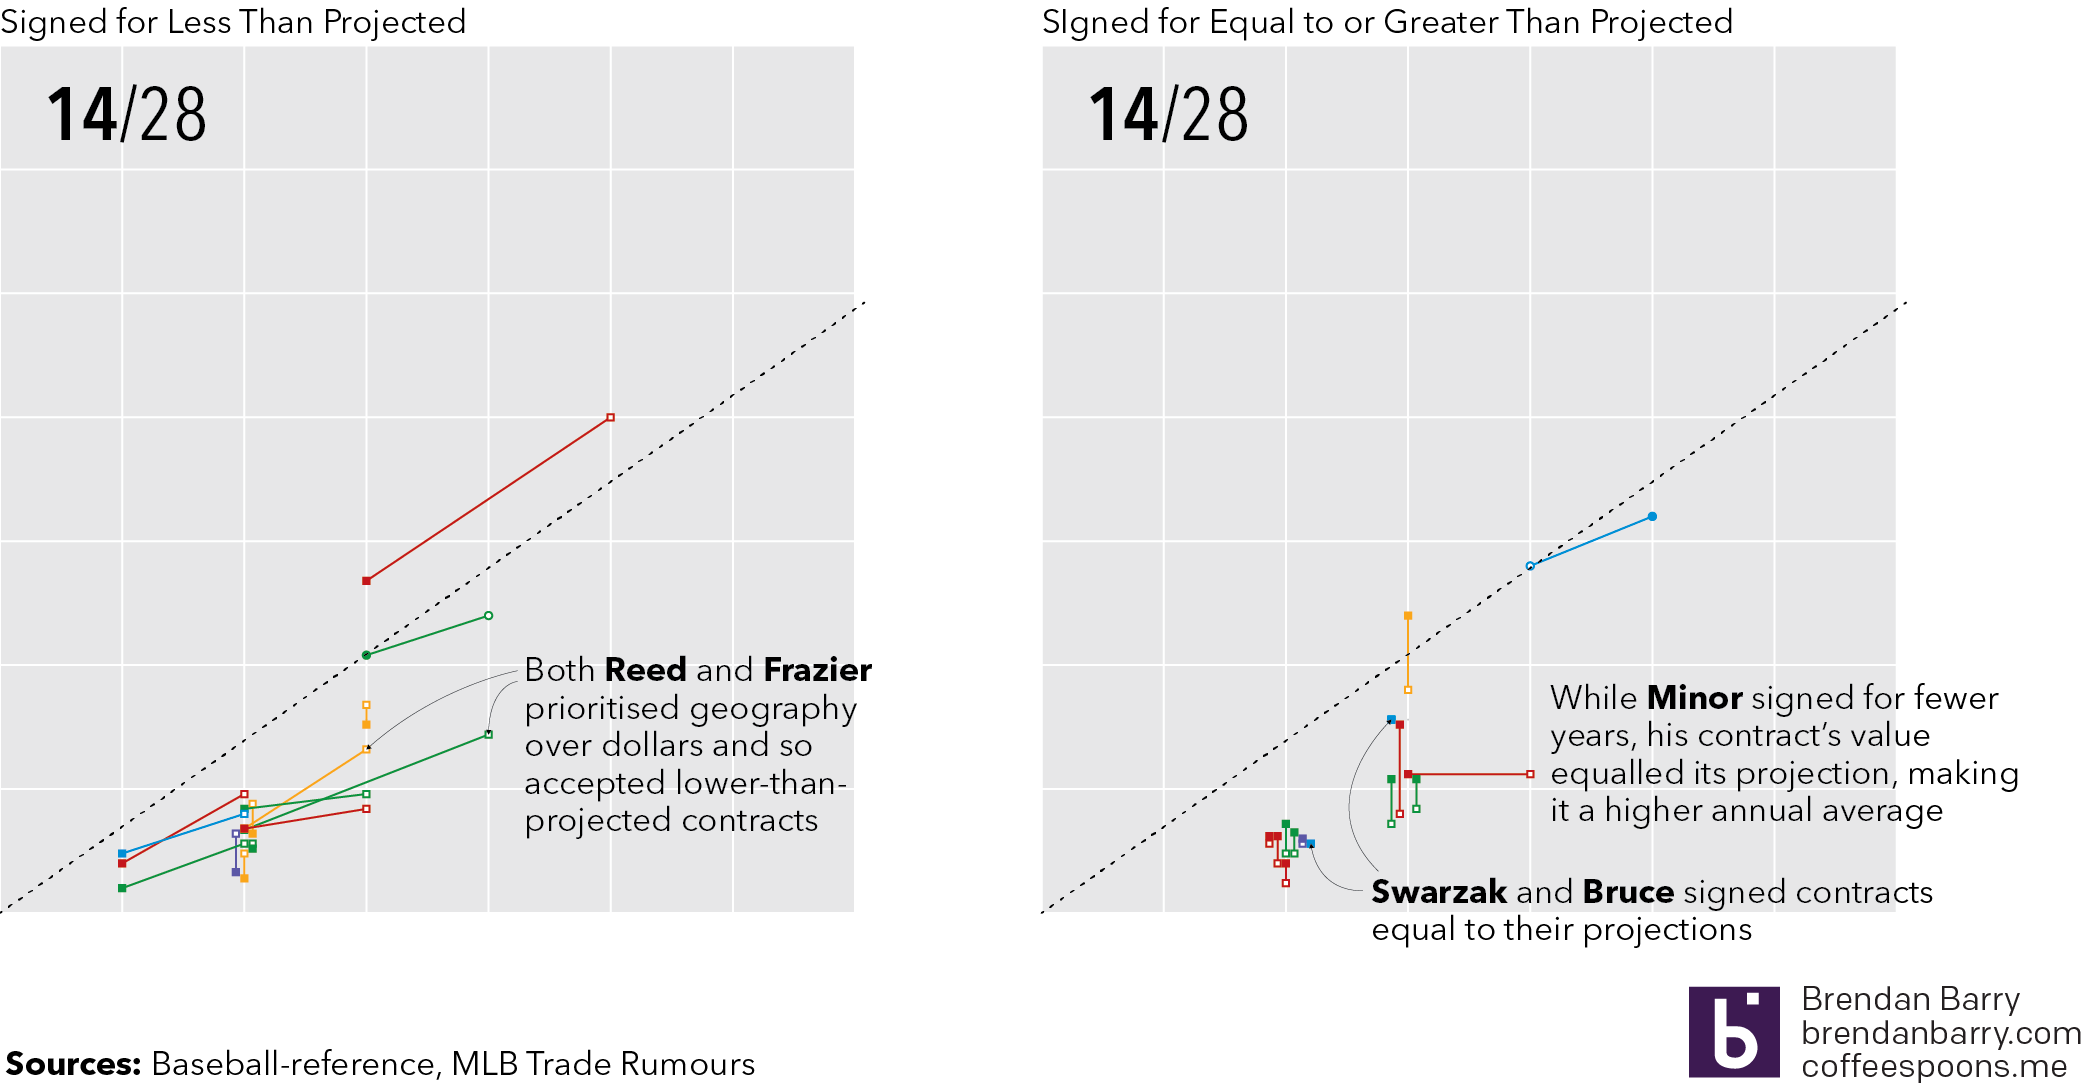 How are the signed players doing versus their contract projections